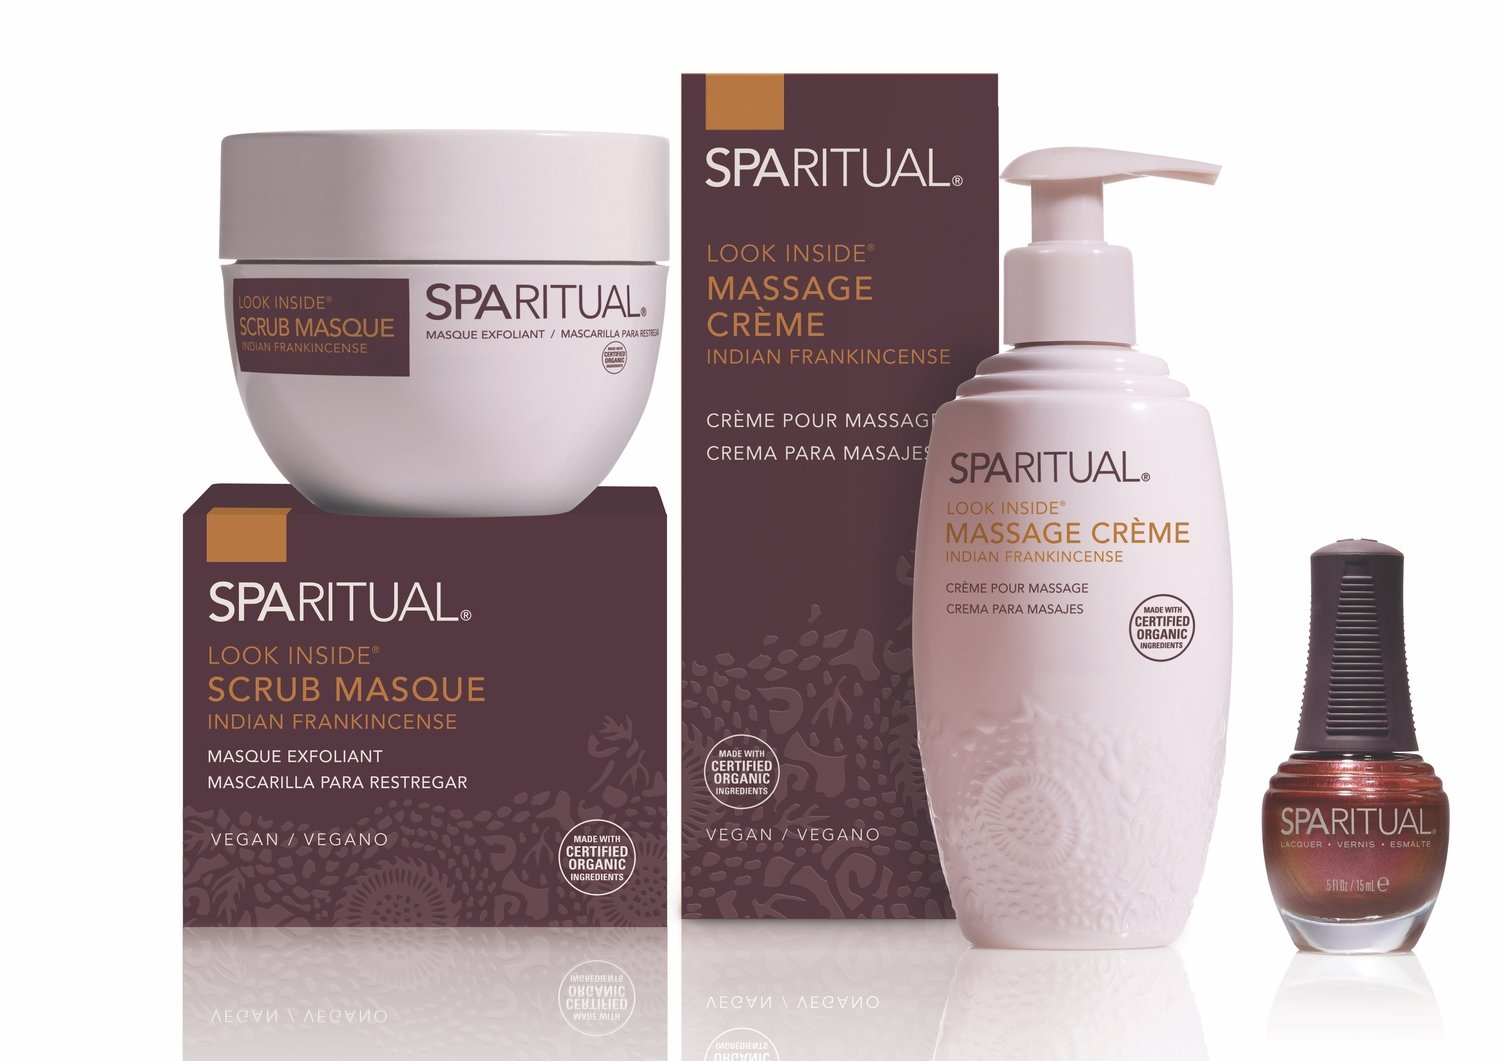 SPARITUAL LOOK INSIDE COLLECTION: Indian Frankincense